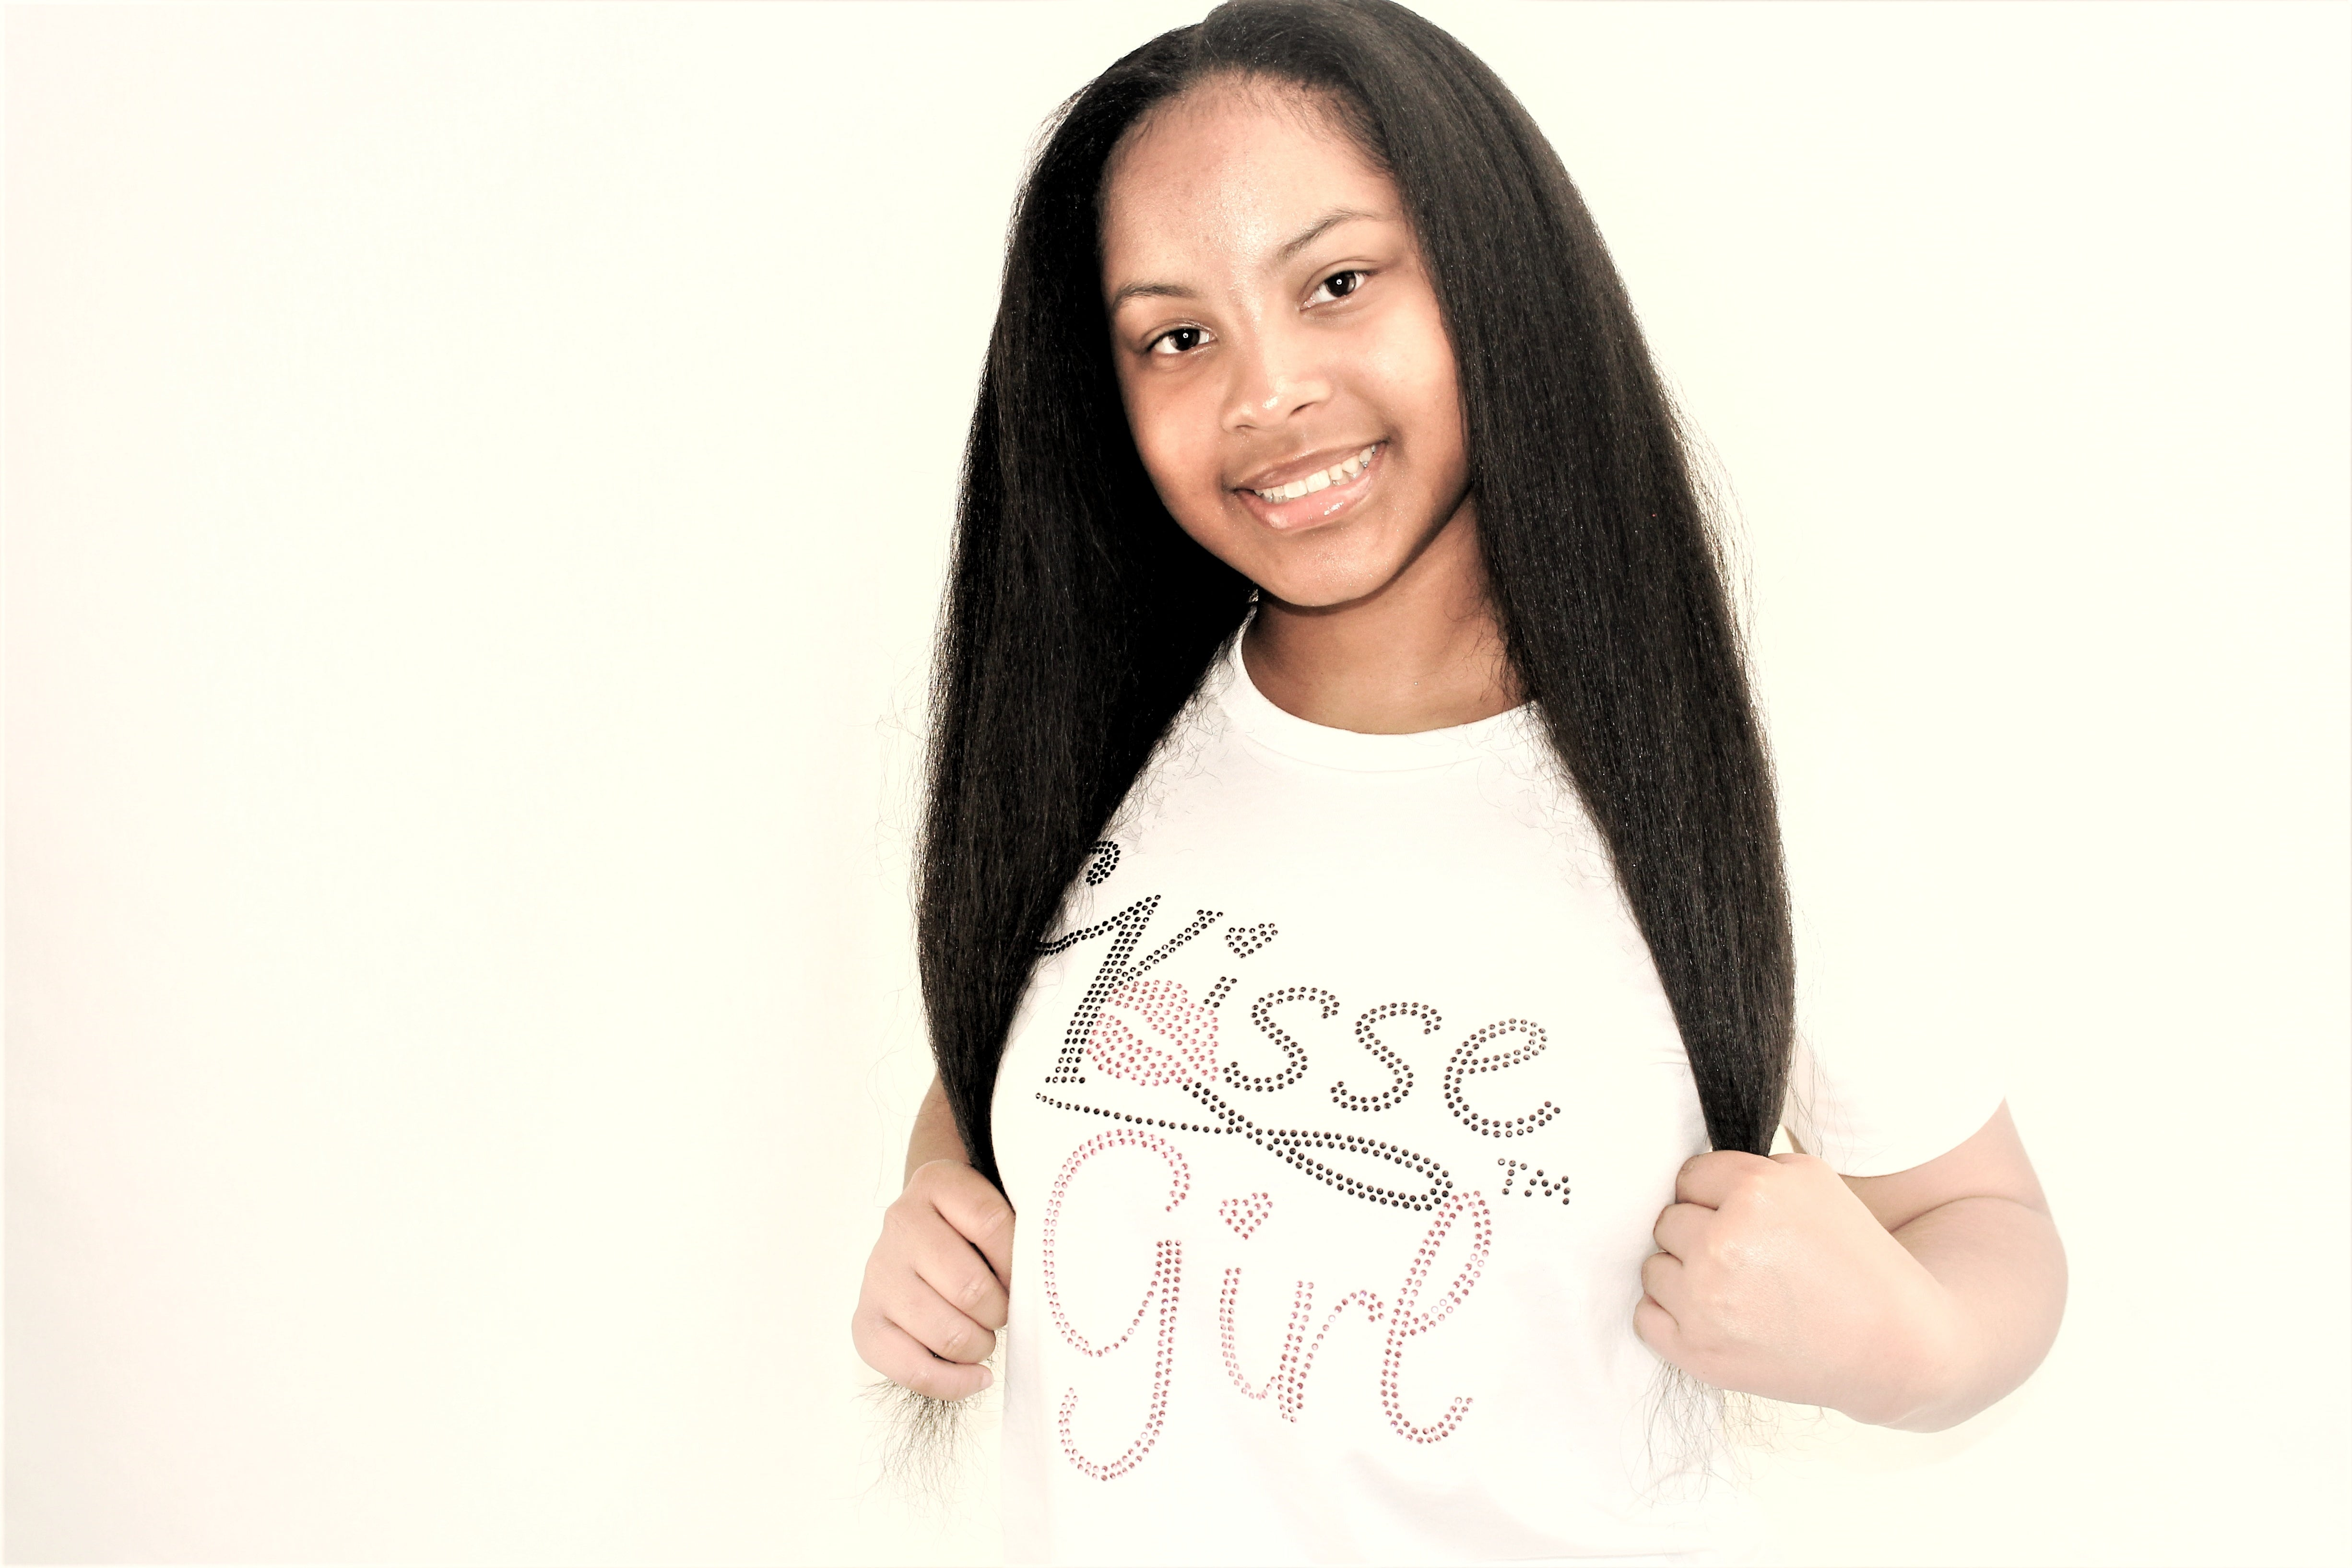 Bling Kisse Girl Youth T-Shirt